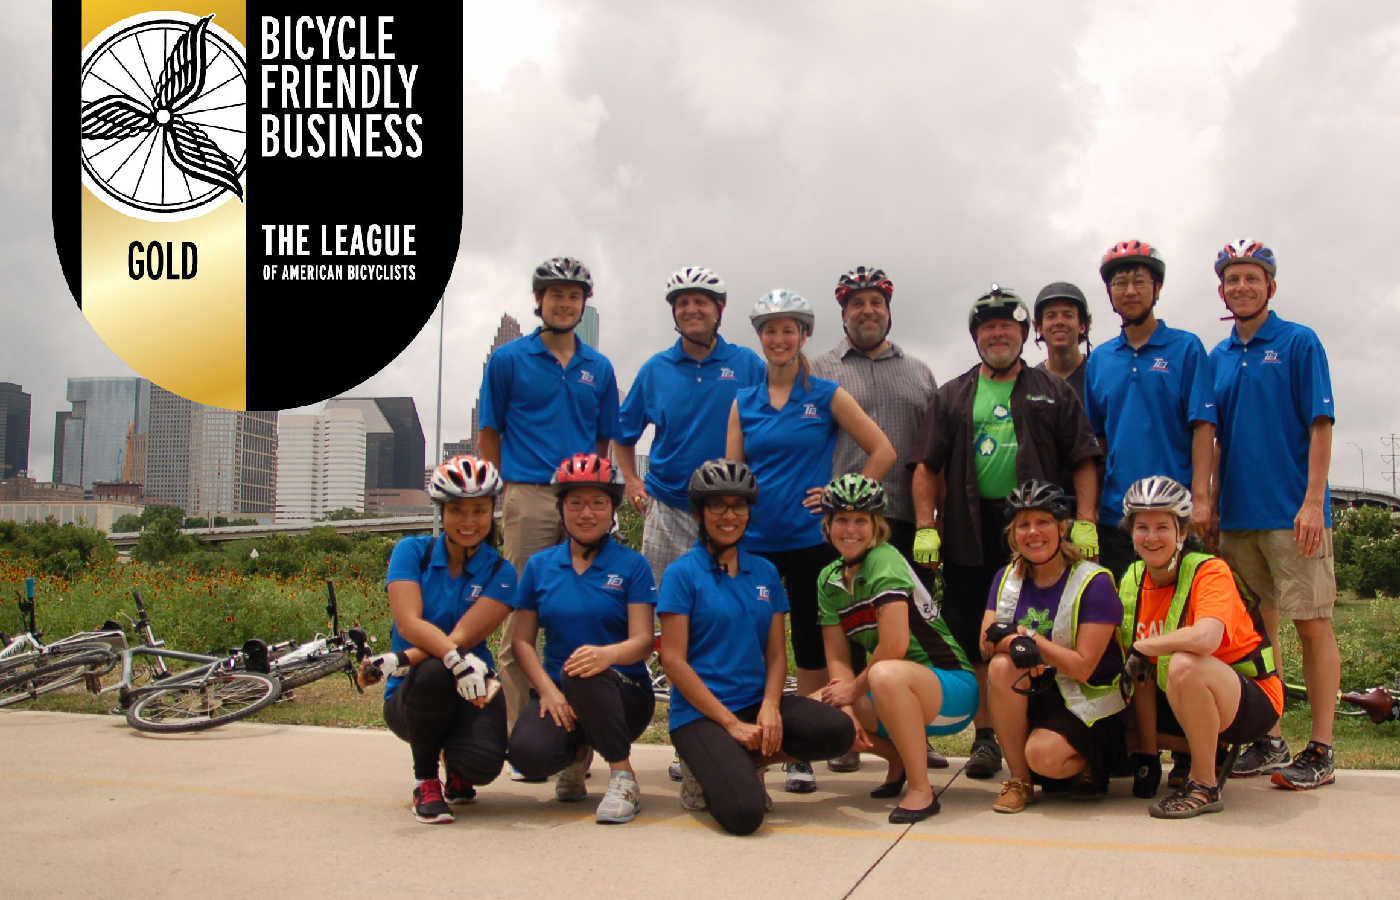 The TEI team, named as a Bicycle Friendly Business by the League of American Bicyclists